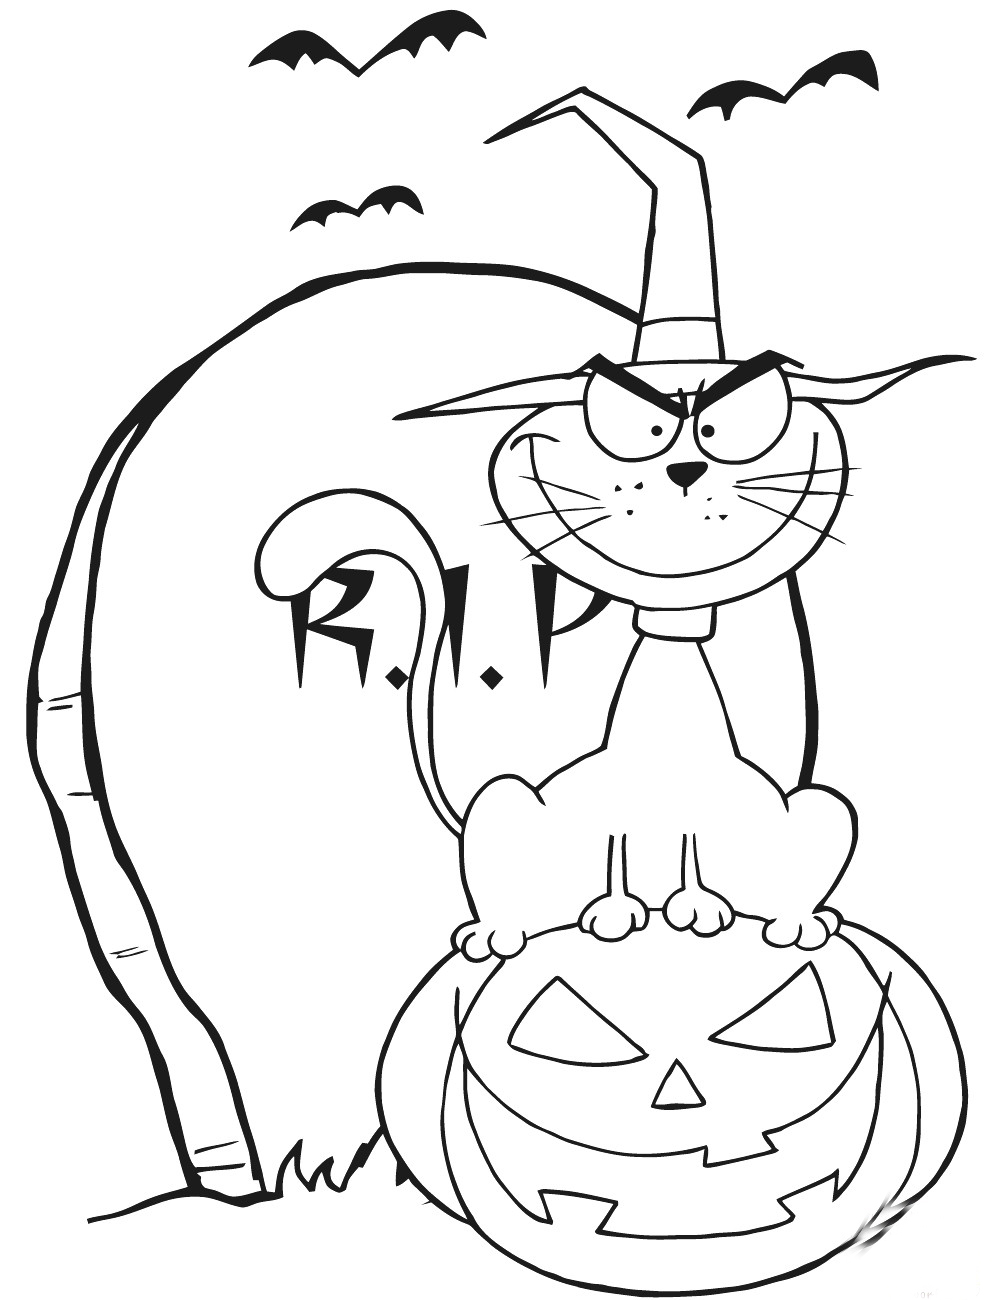 coloring sheets halloween top 10 halloween coloring pages for kids to consider this coloring halloween sheets